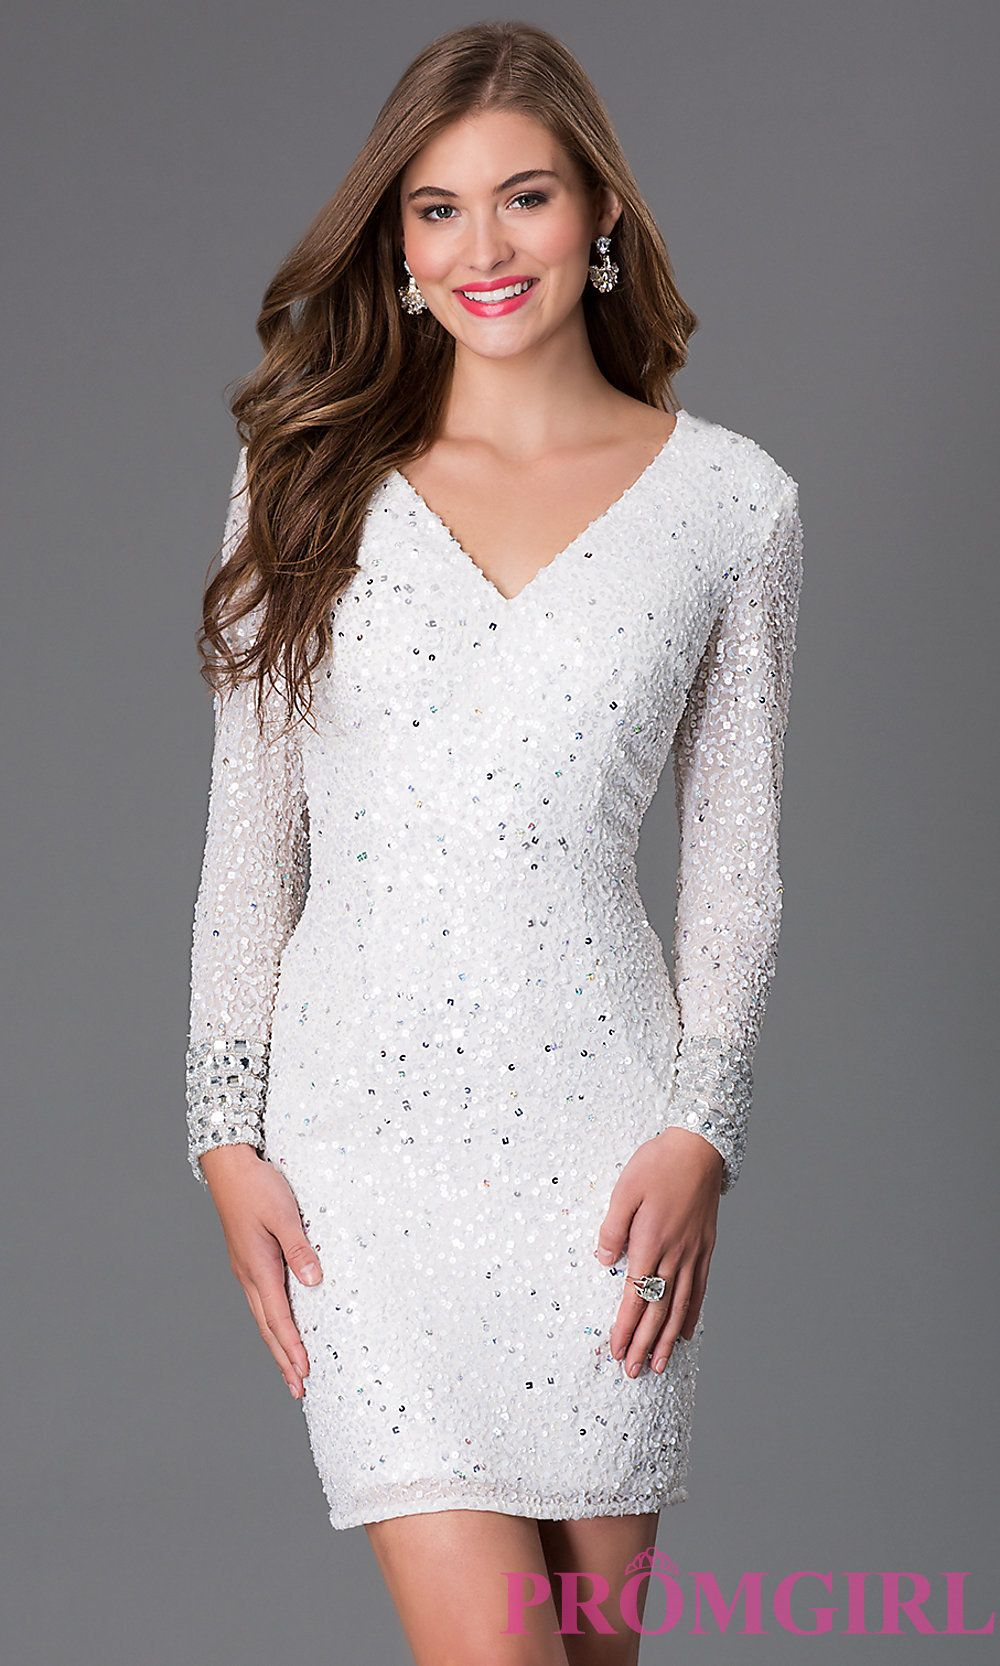 Lovely Holiday Cocktail Dresses : Holiday Cocktail Dress 4 | Formal ...